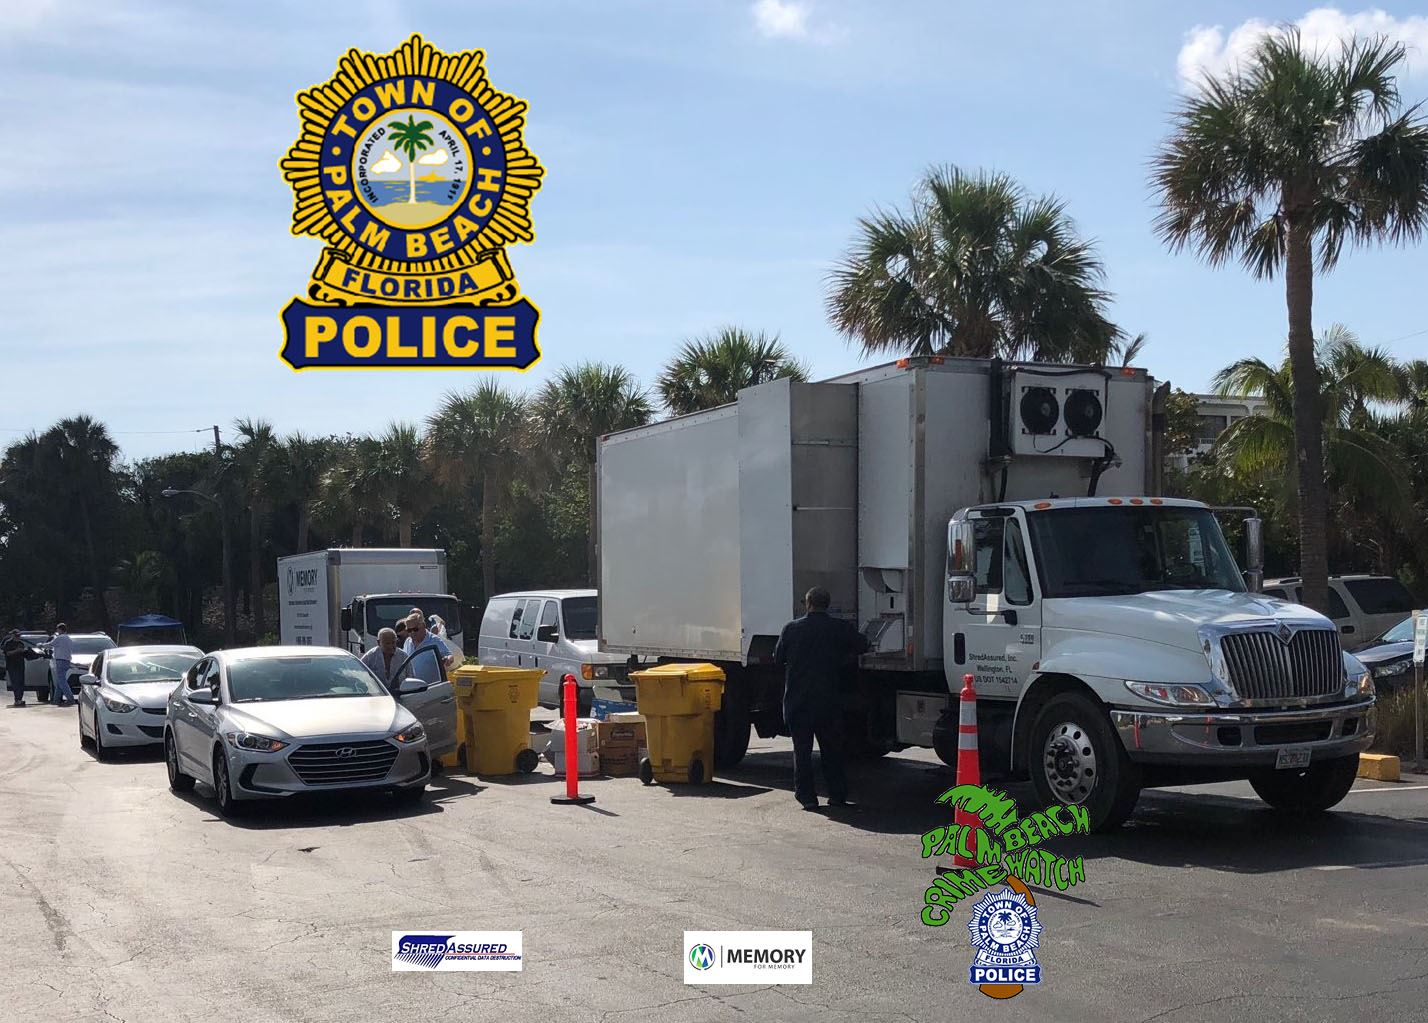 Shred Event pic two trucks with Badge and pics